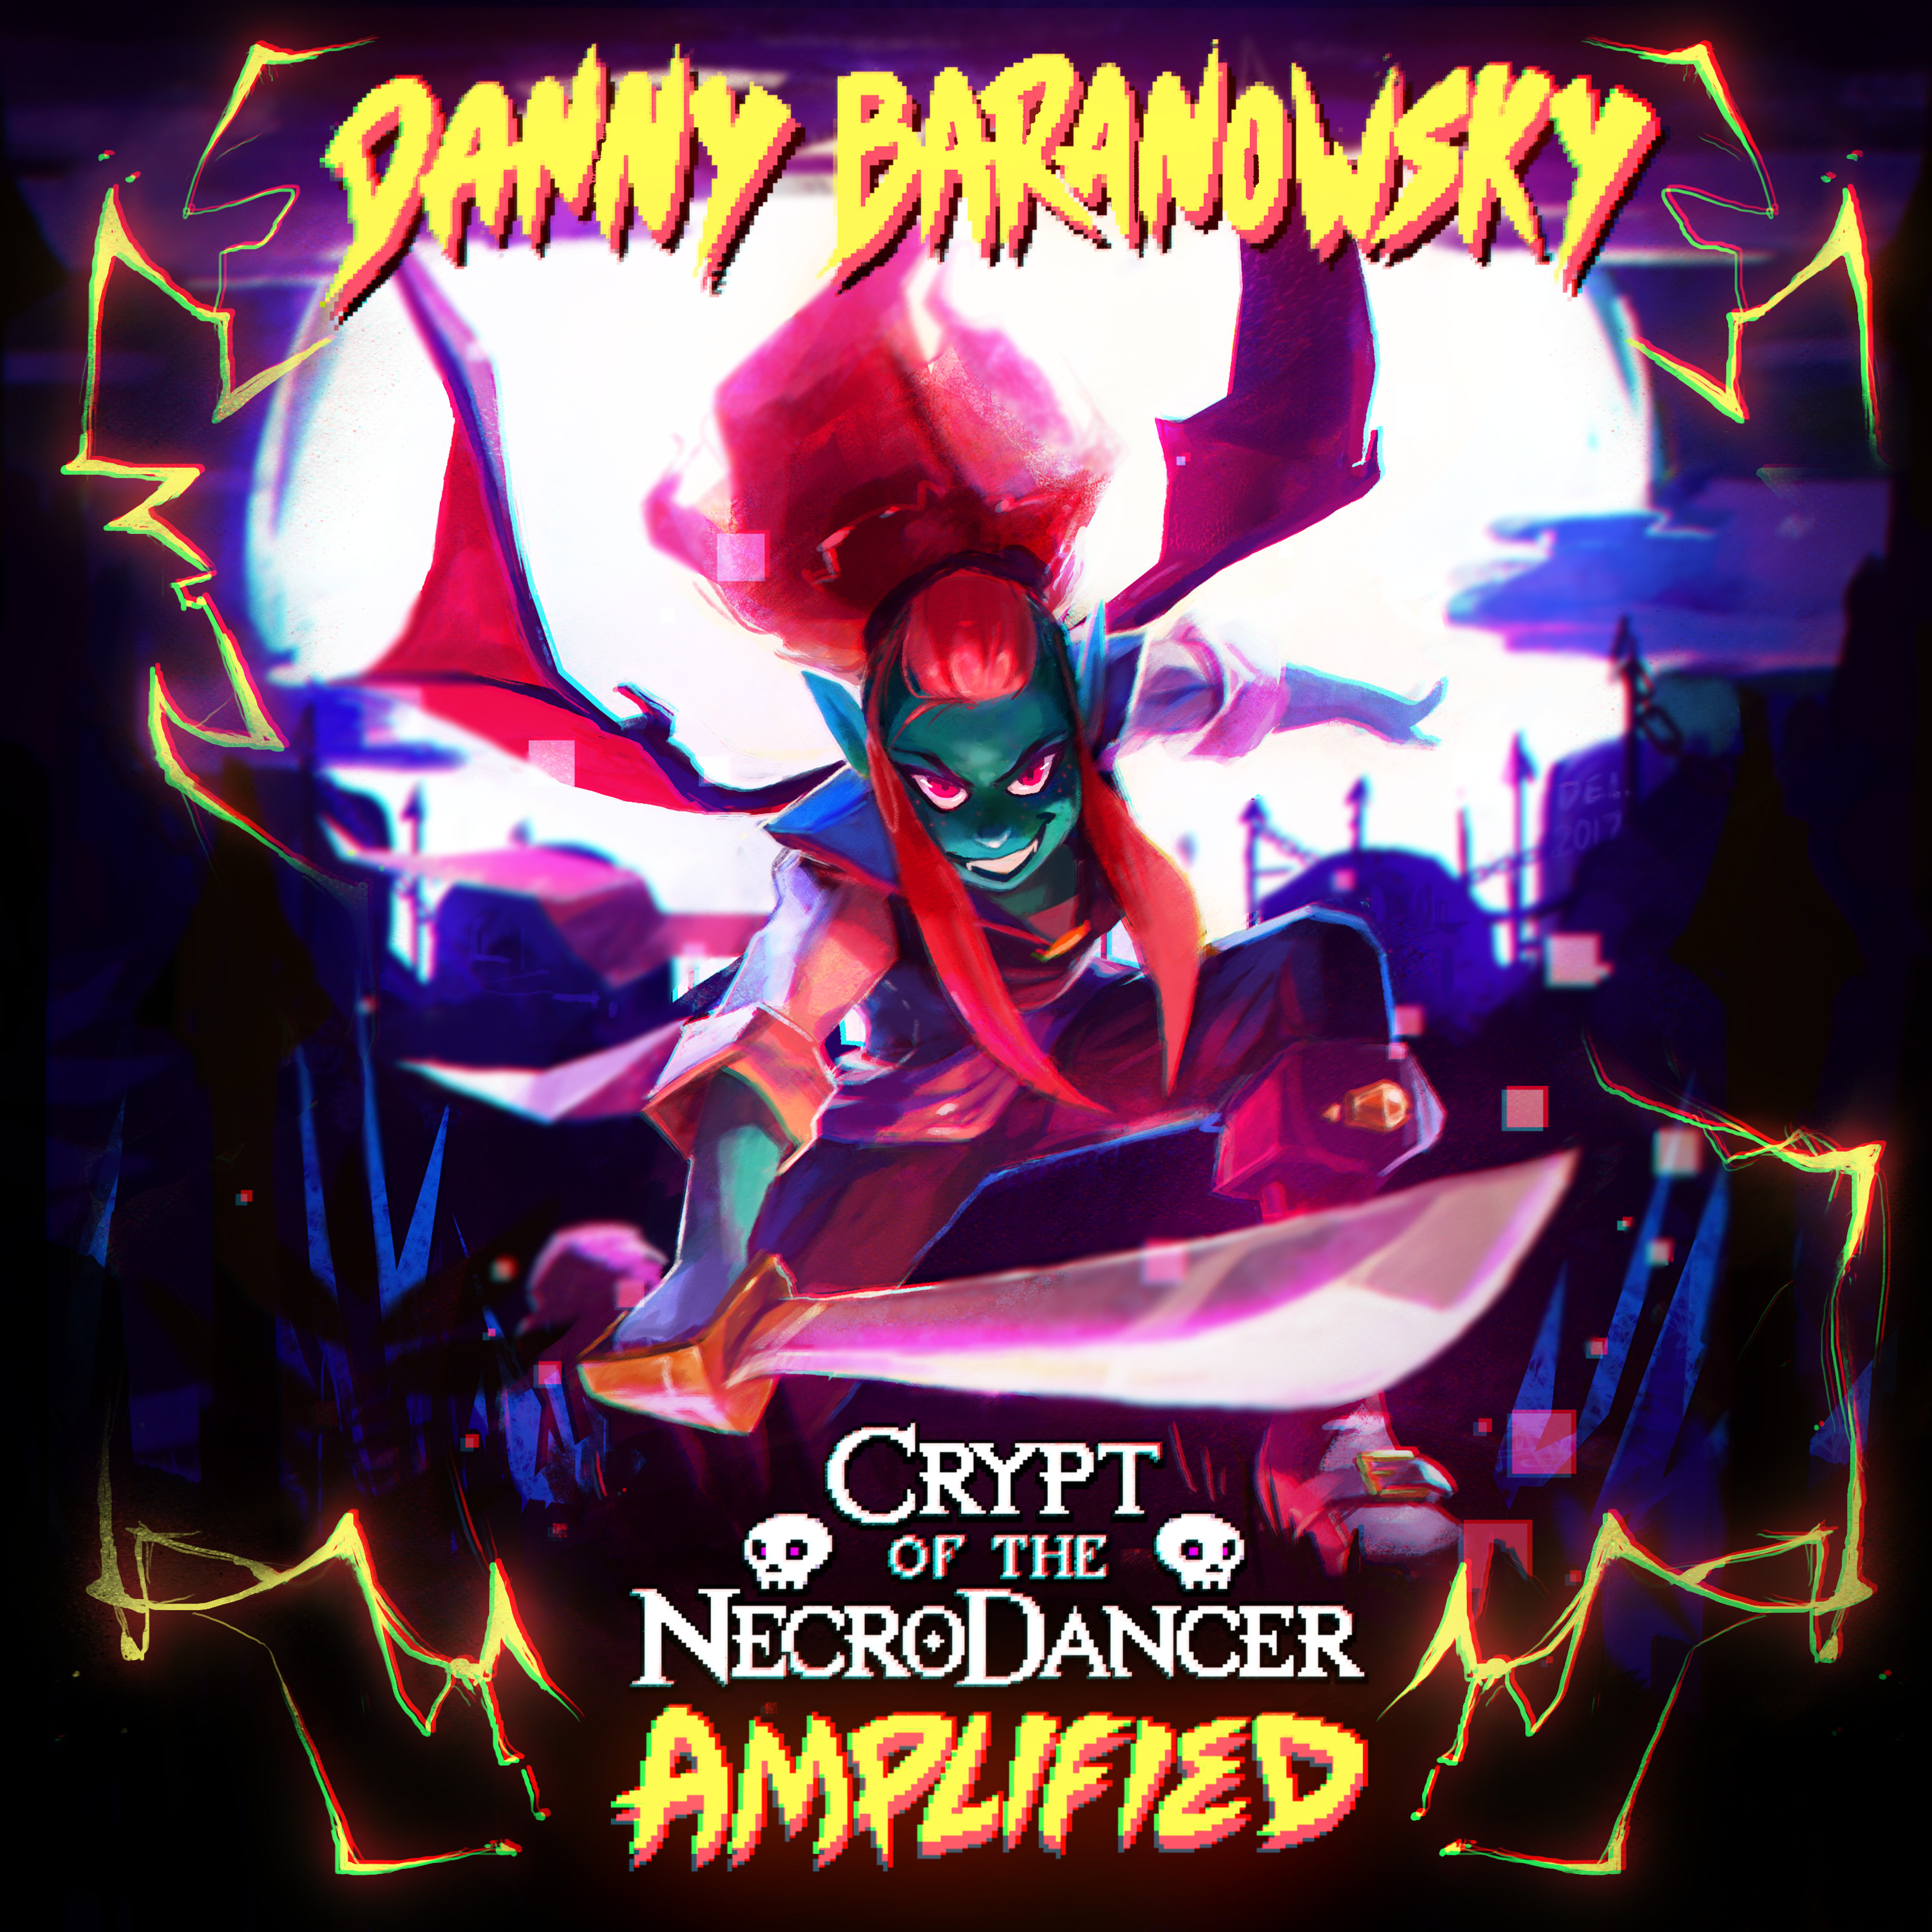 Crypt of the NecroDancer: AMPLIFIED OST - Danny Baranowsky screenshot